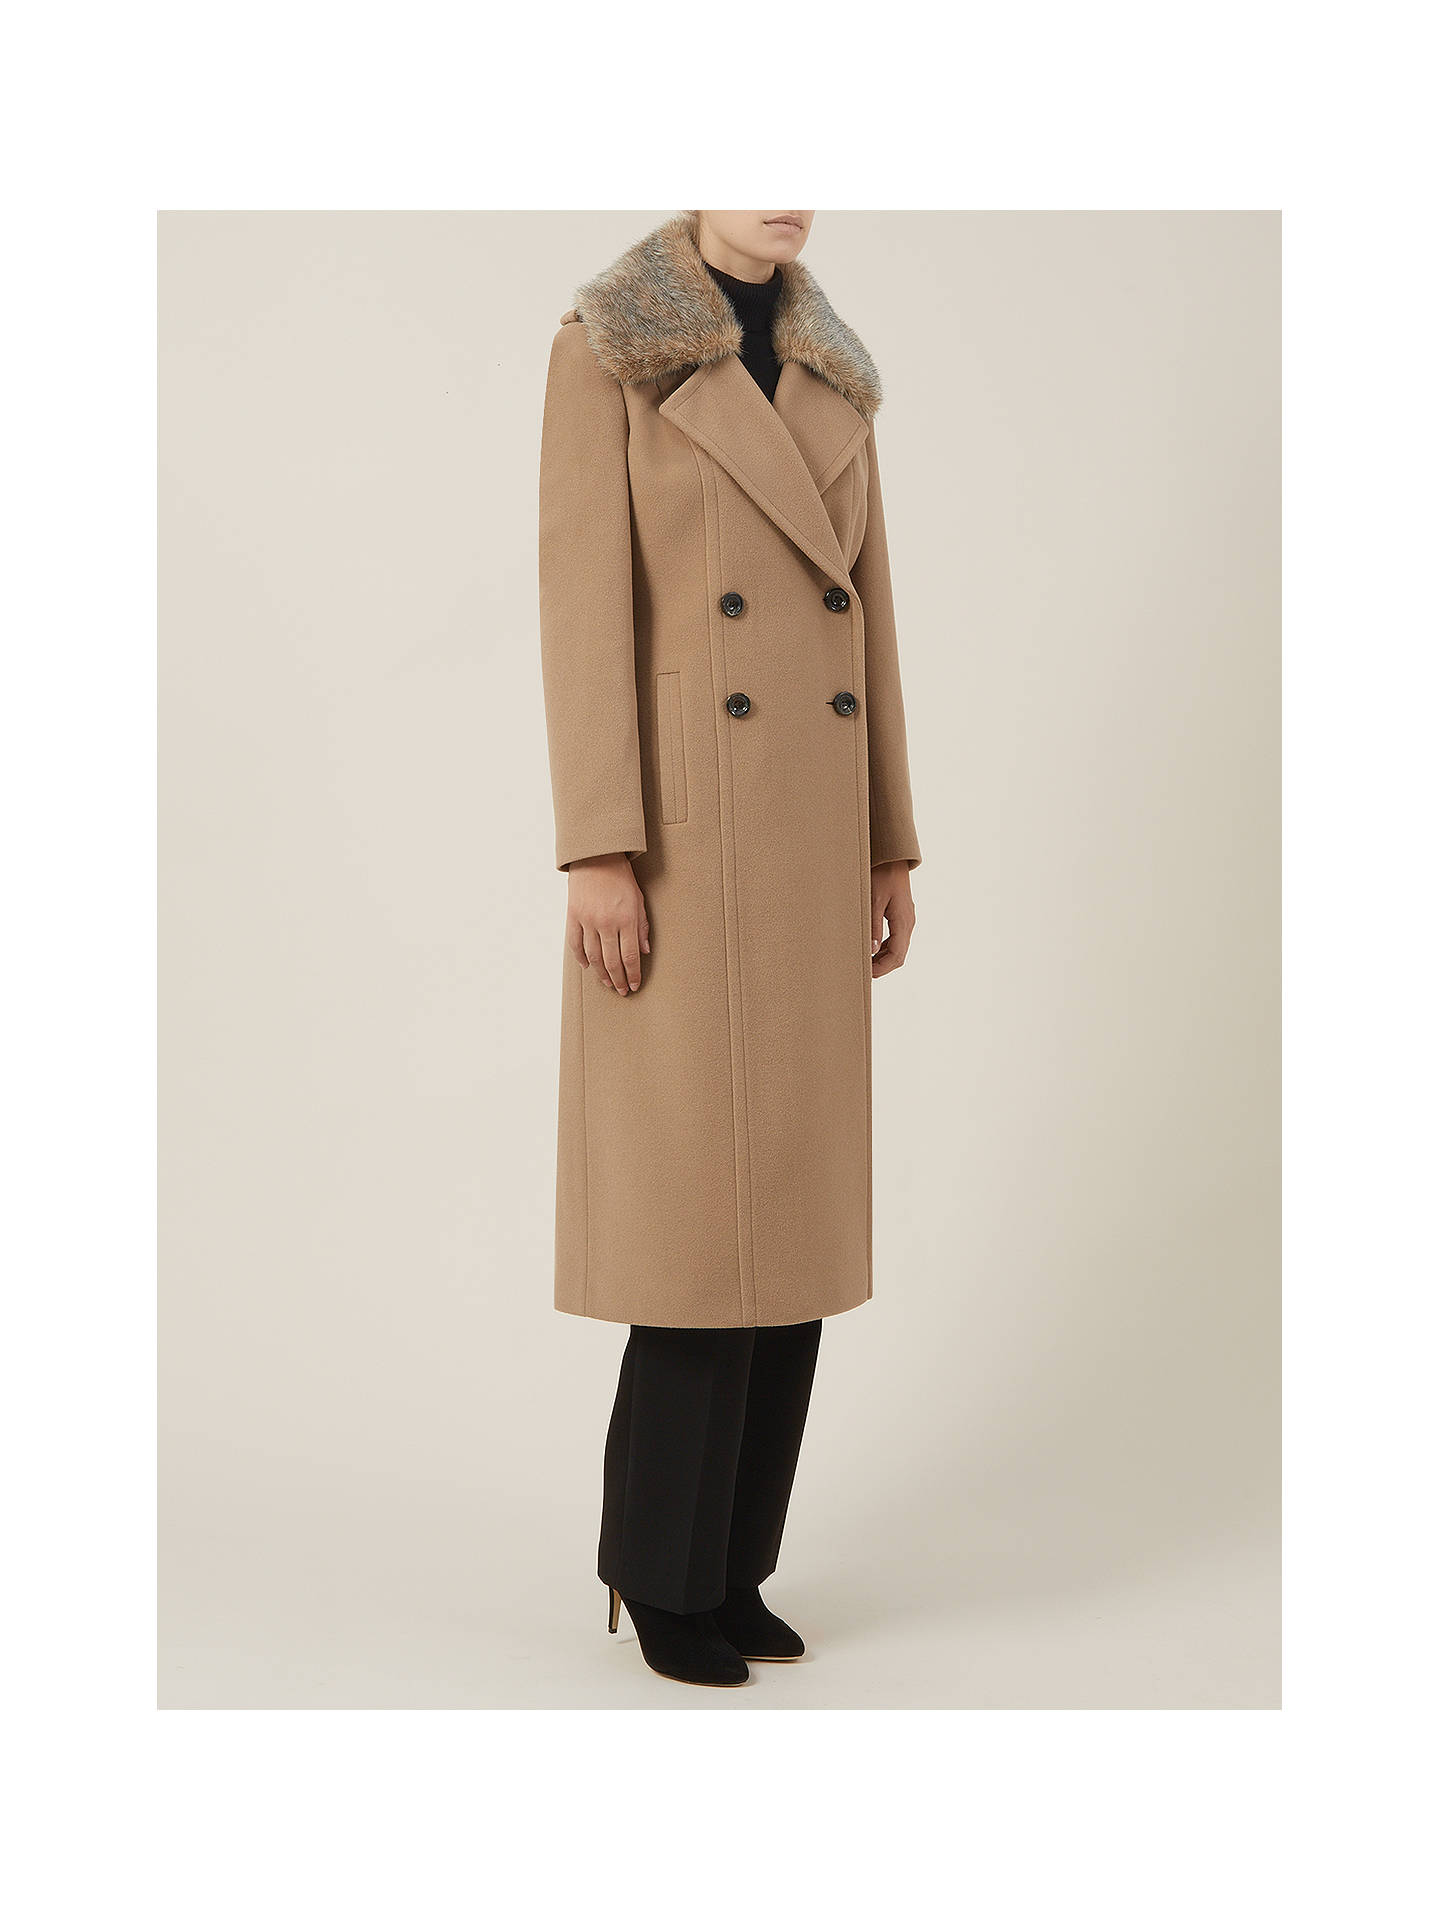 BuyPlanet Double-Breasted Faux Fur Coat, Camel, 8 Online at johnlewis.com